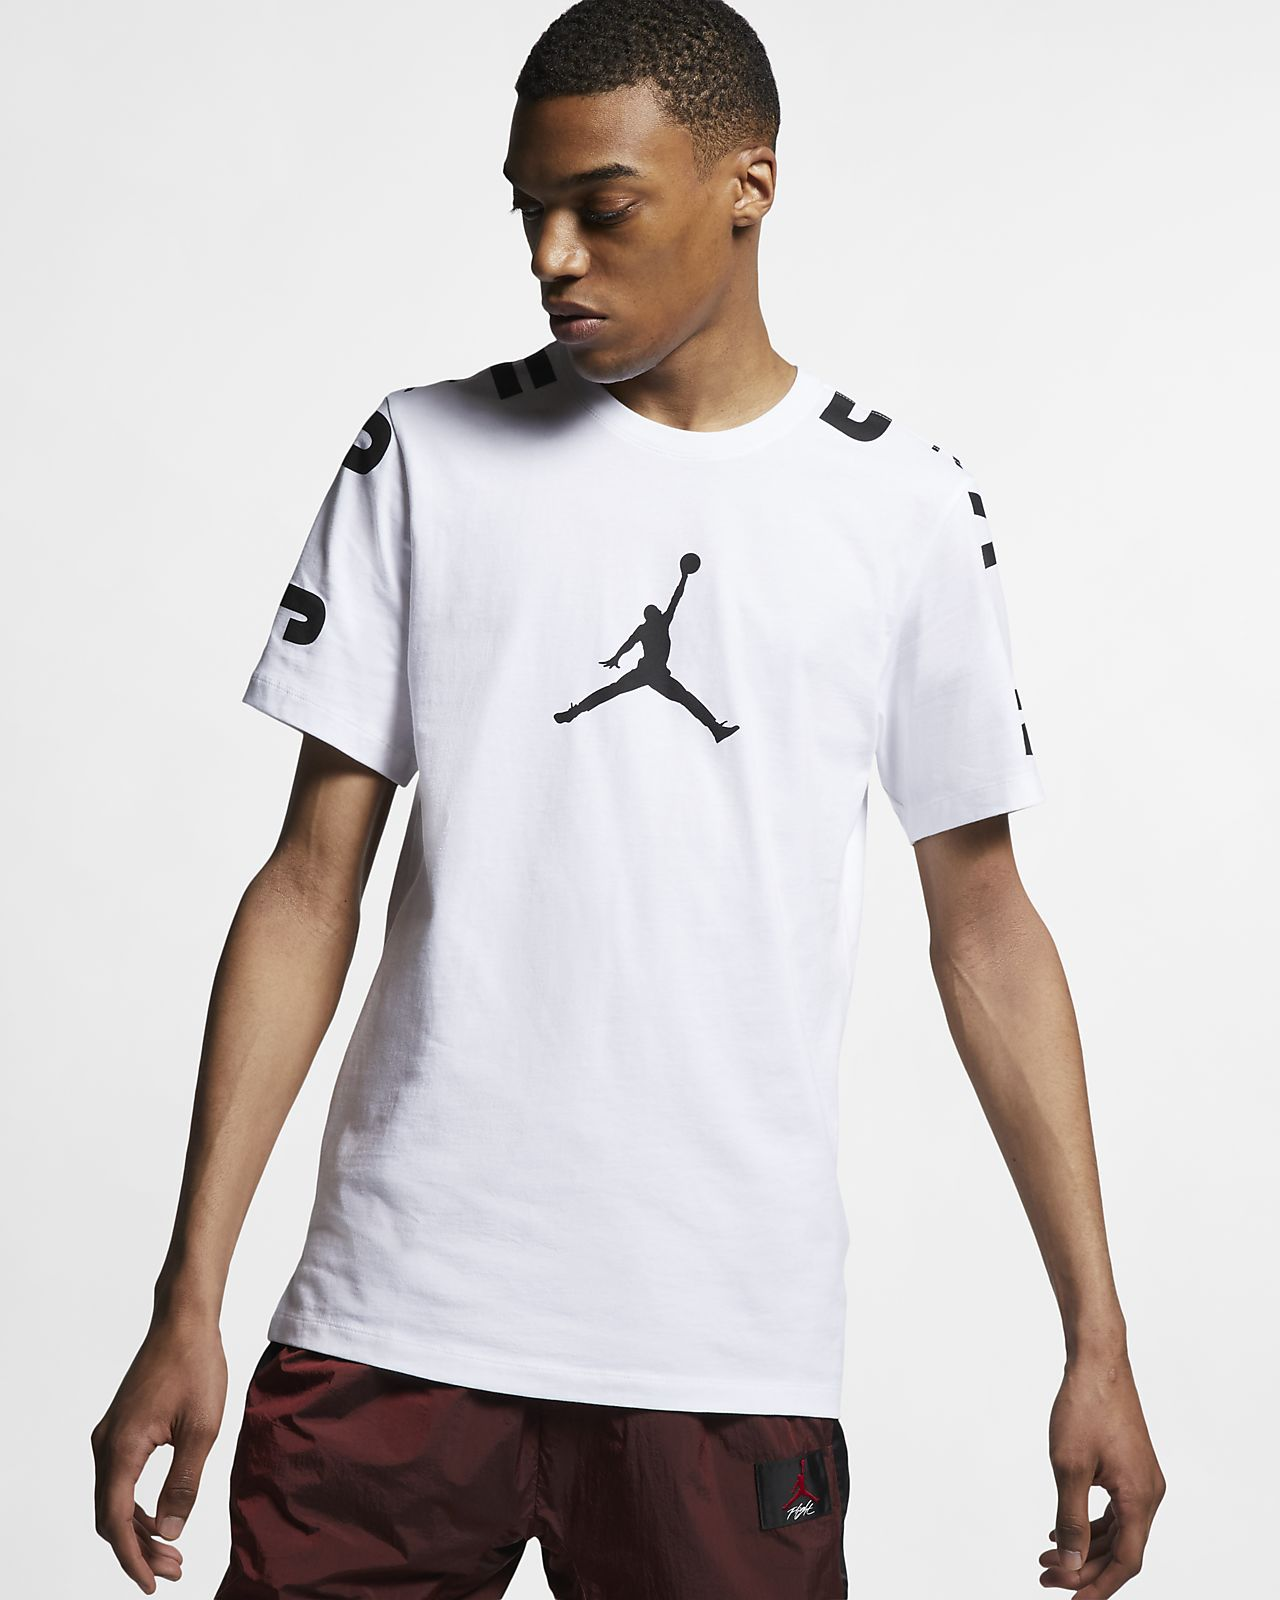 Jordan Stretch 23 Men's T-Shirt